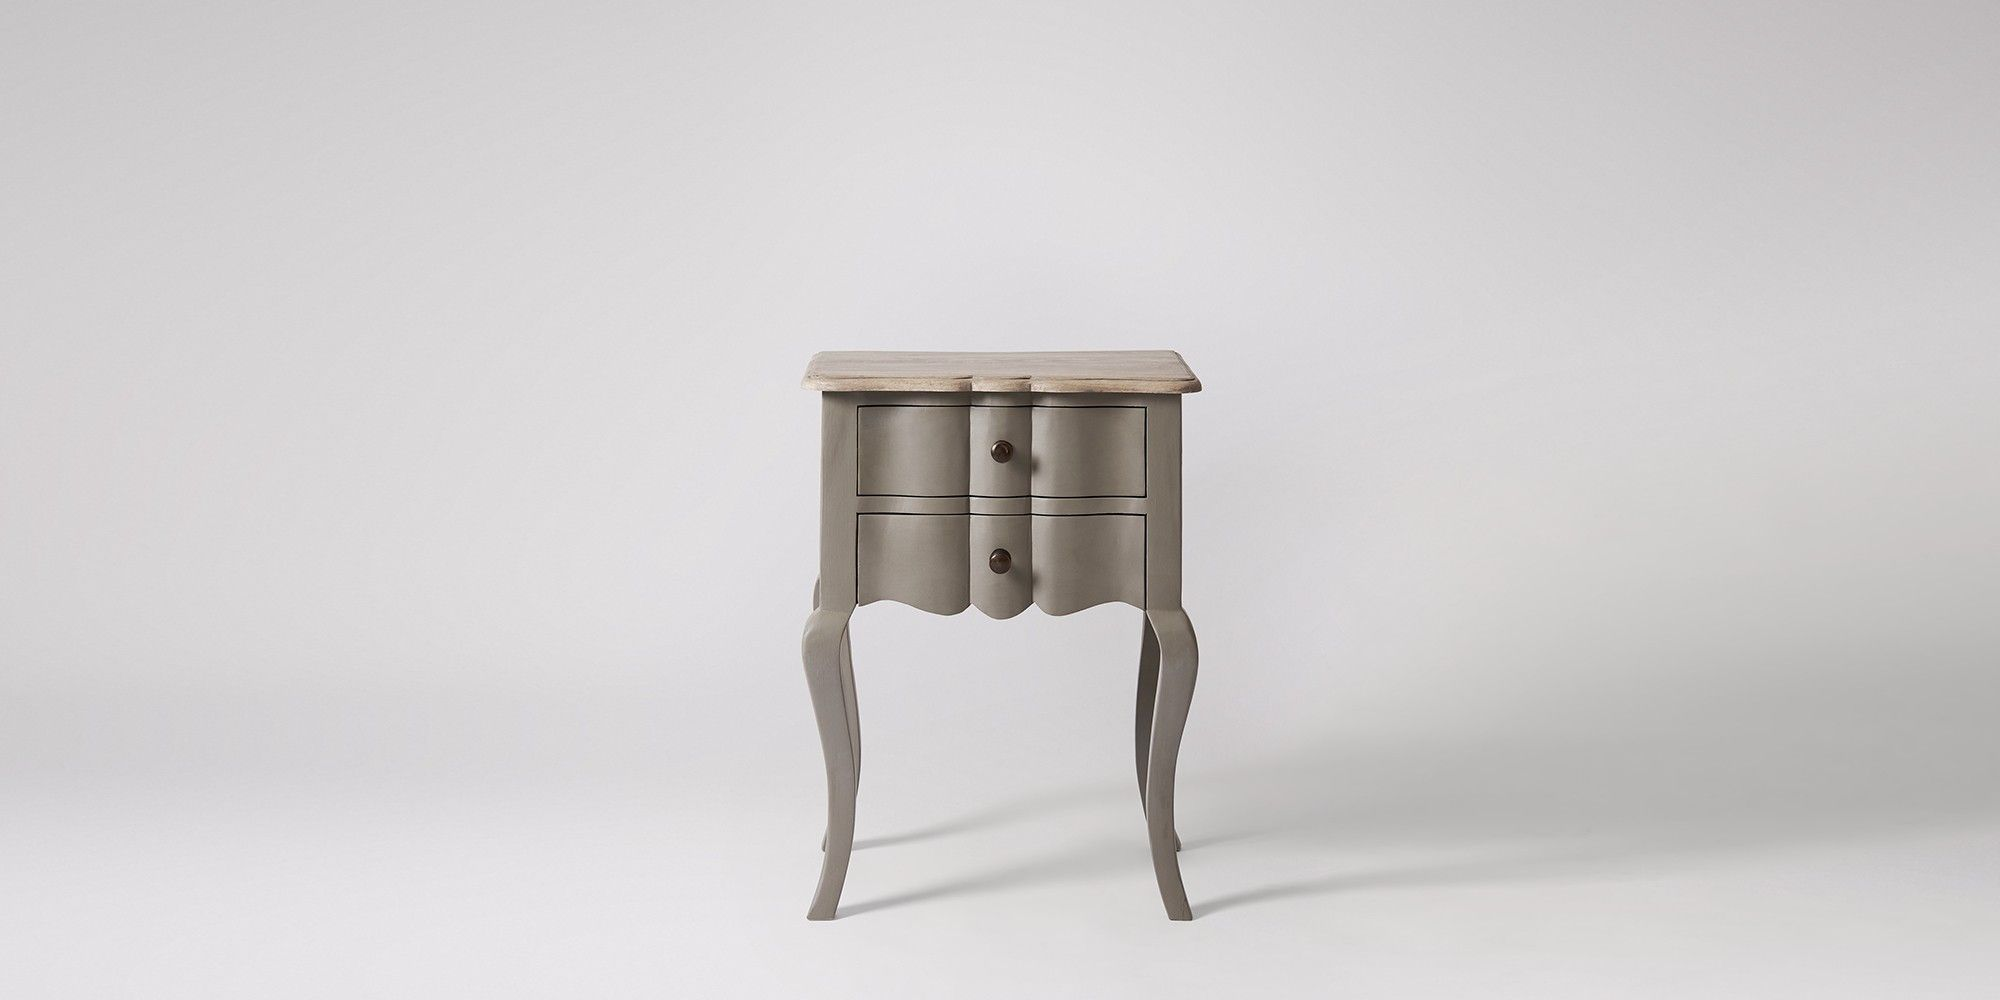 The Delightful Arielle Two Drawer Bedside Table In French Grey Celebrate Making At Swoon Editions Hand Crafted Designs Without Inflated Price